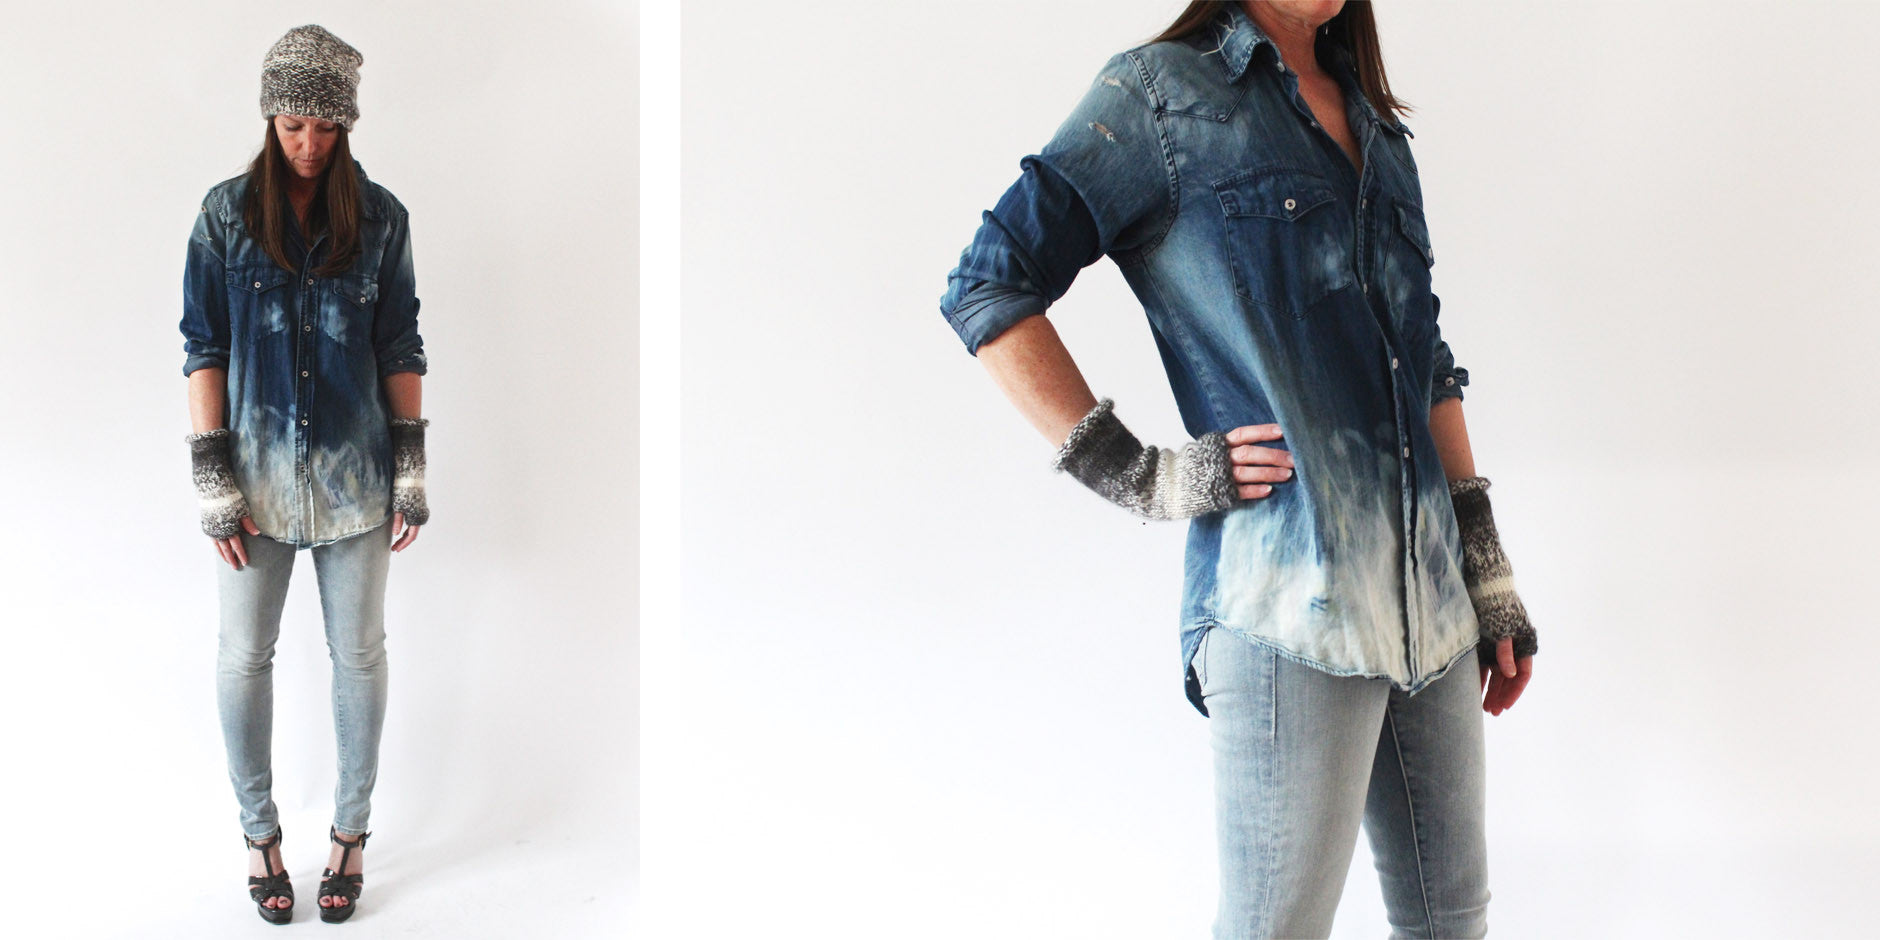 the looker jean - clear as day/nsf destroyed denim shirt/anna kula hat and gloves